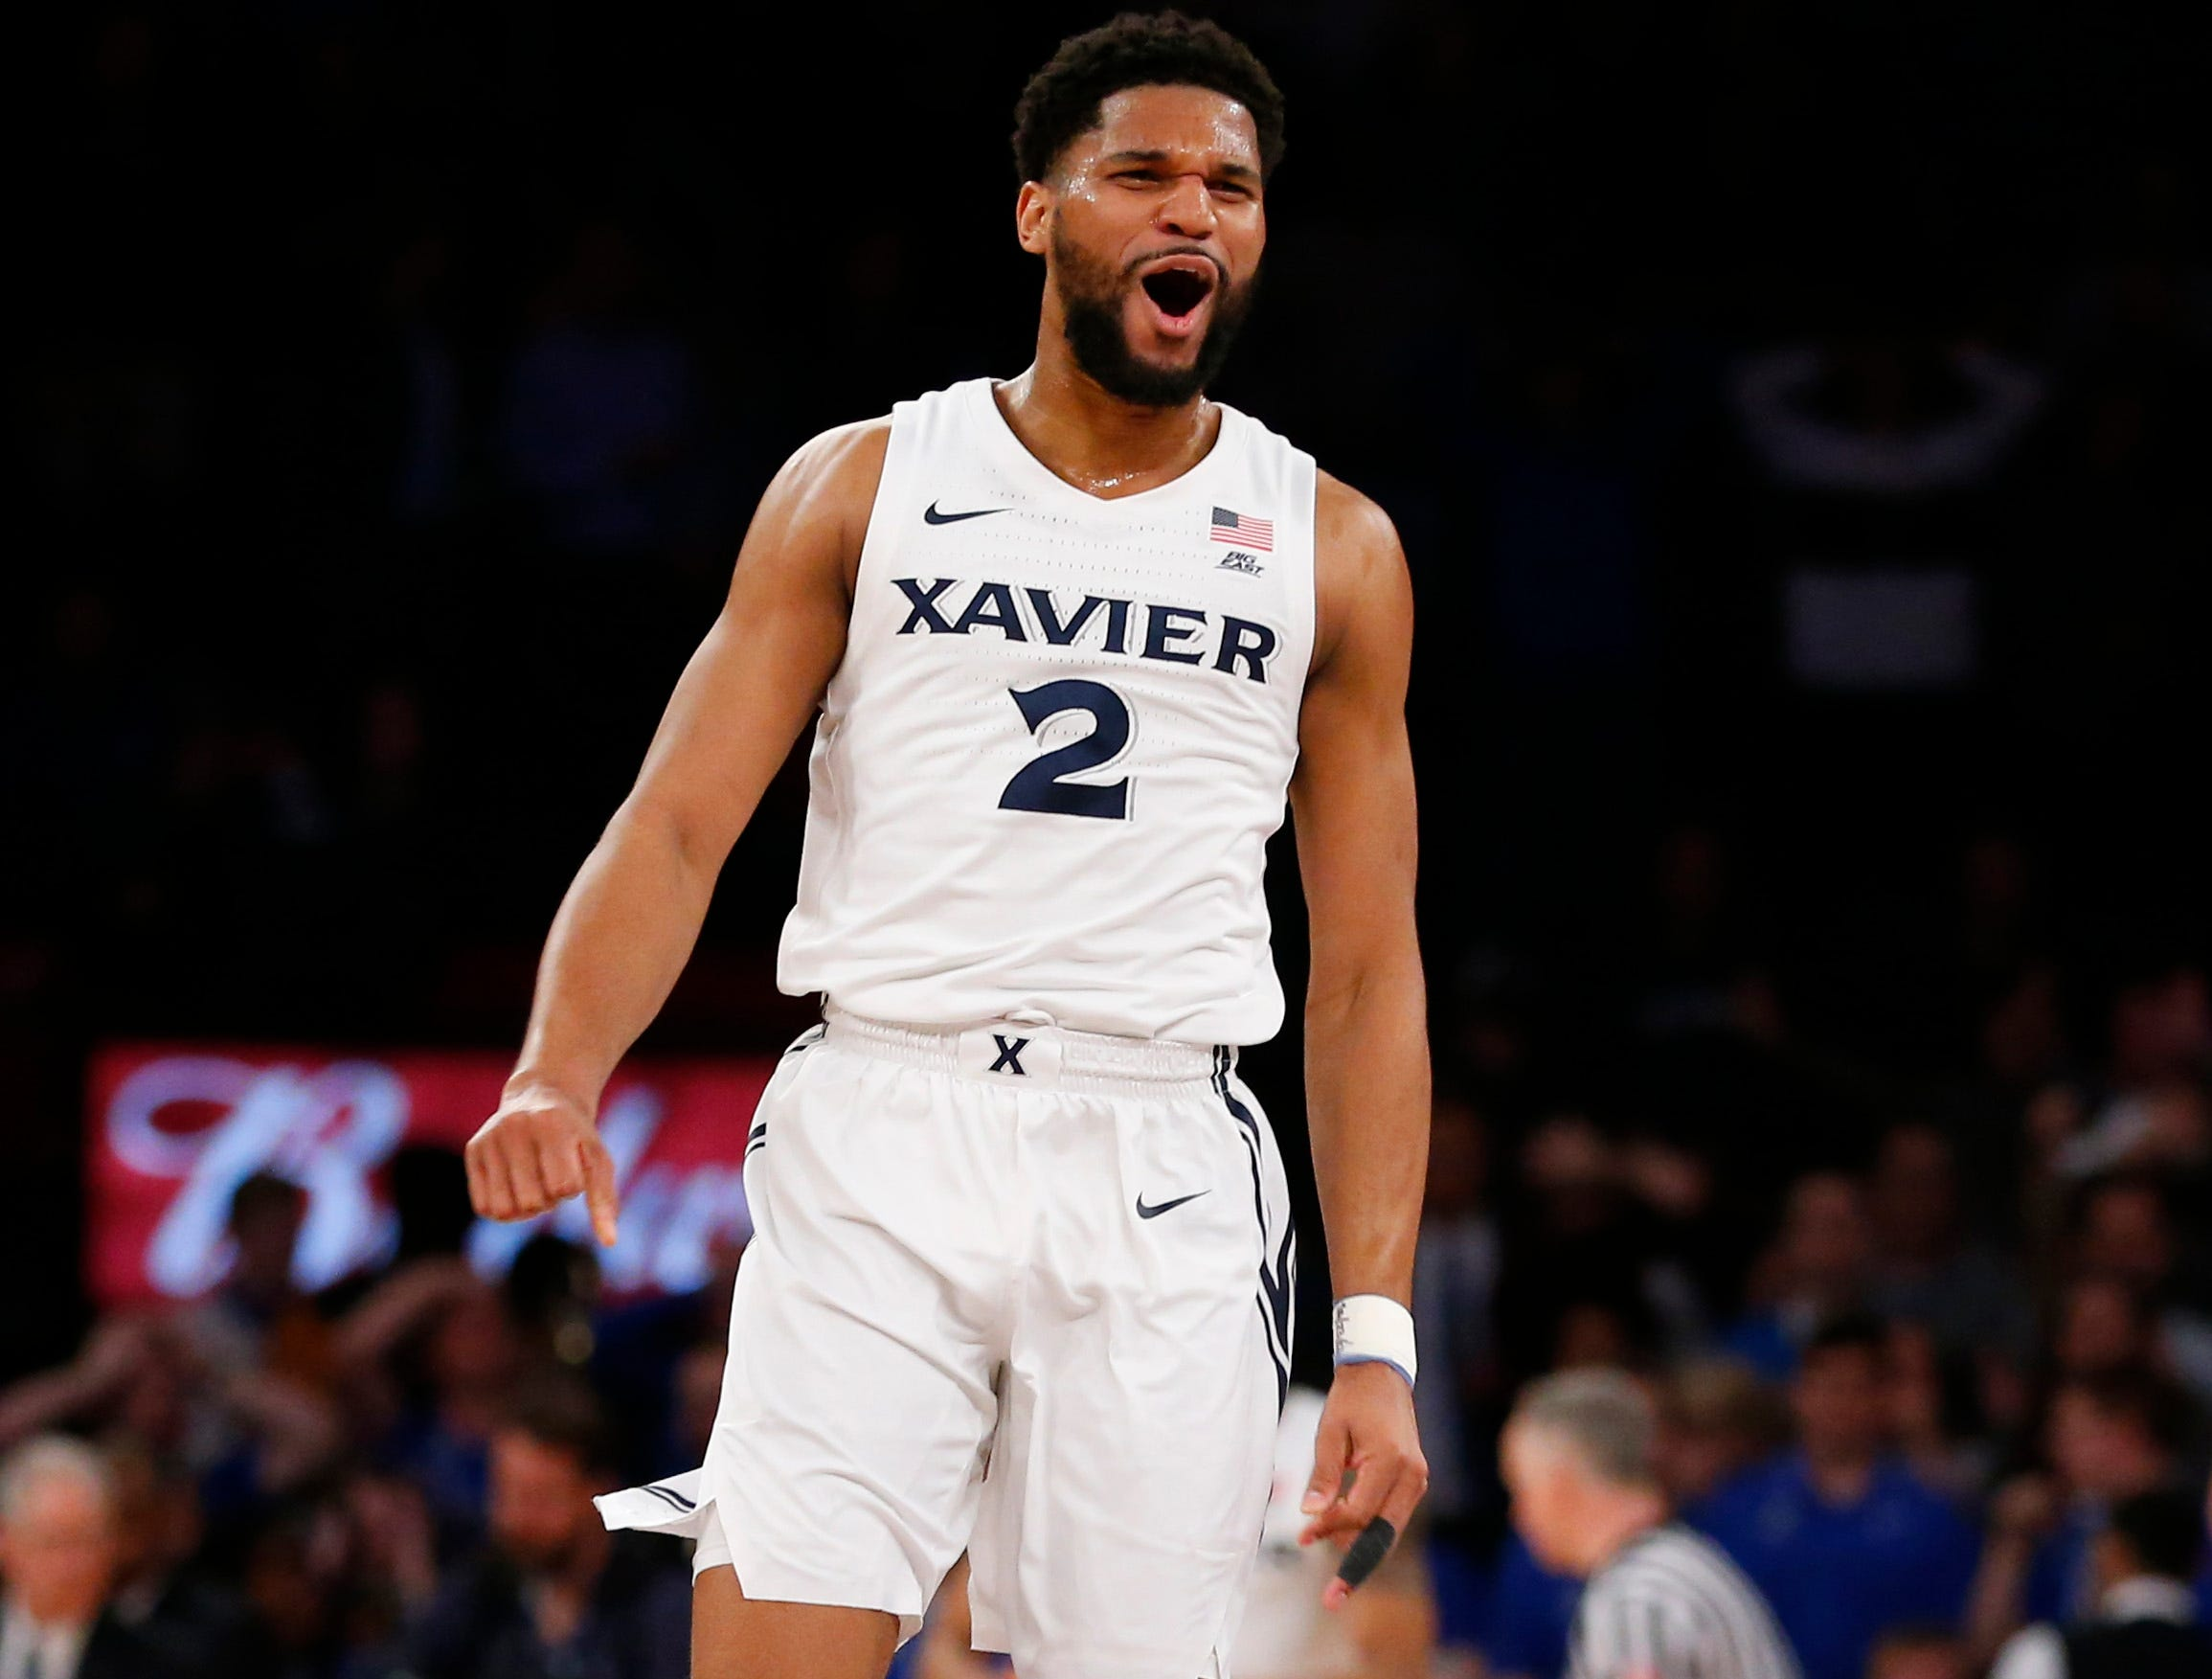 Kyle Castlin (2) celebrates after defeating the Creighton Bluejays in a quarterfinal game of the Big East conference tournament at Madison Square Garden.